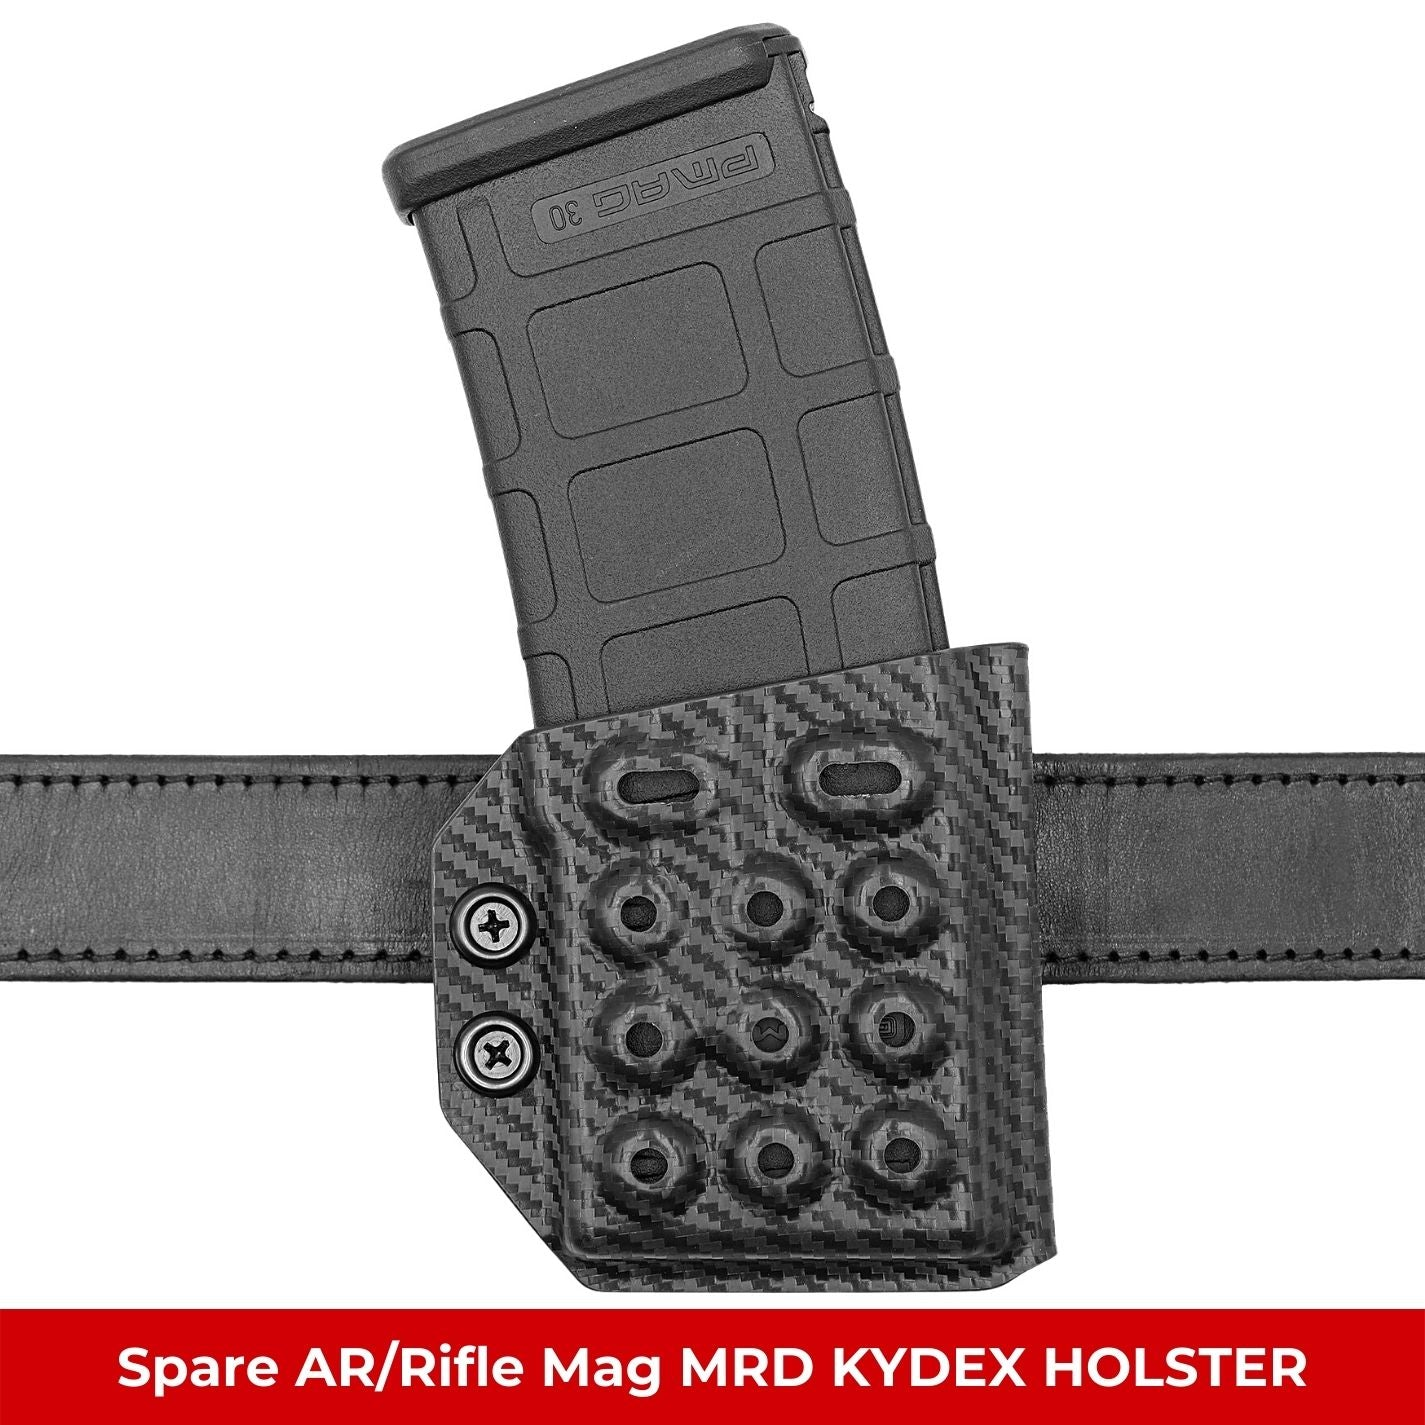 AR/Rifle KYDEX Mag Holster